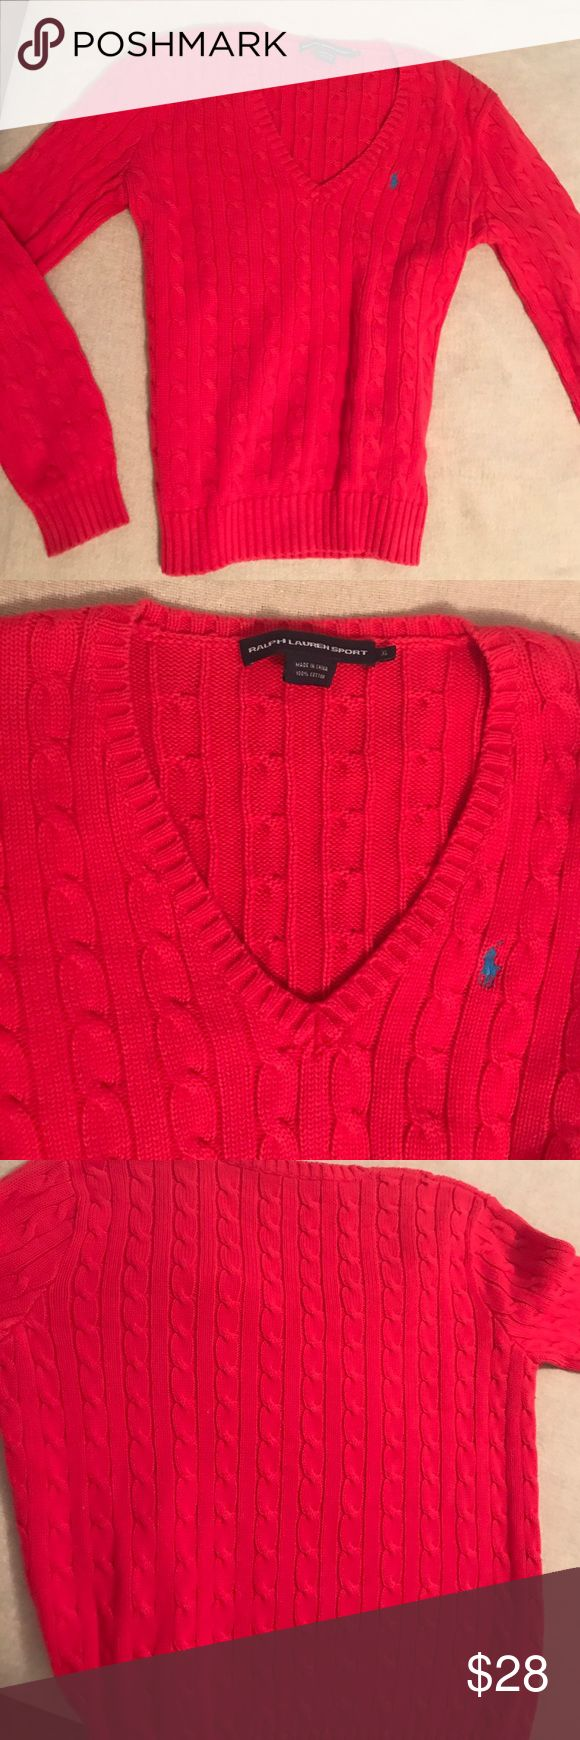 Ralph Lauren polo cable knit sweater(read below)! Ralph Lauren bright dk pink cable knit sweater, fits like a medium although ITS A XL but I REPEAT ITS DEF FITS LIKE A MEDIUM-LARGE! I bought for the xl and it doesn't fit me like an xl! Other then that in great condition! Great sweater for a dress down day or with sweats Ralph Lauren Sweaters